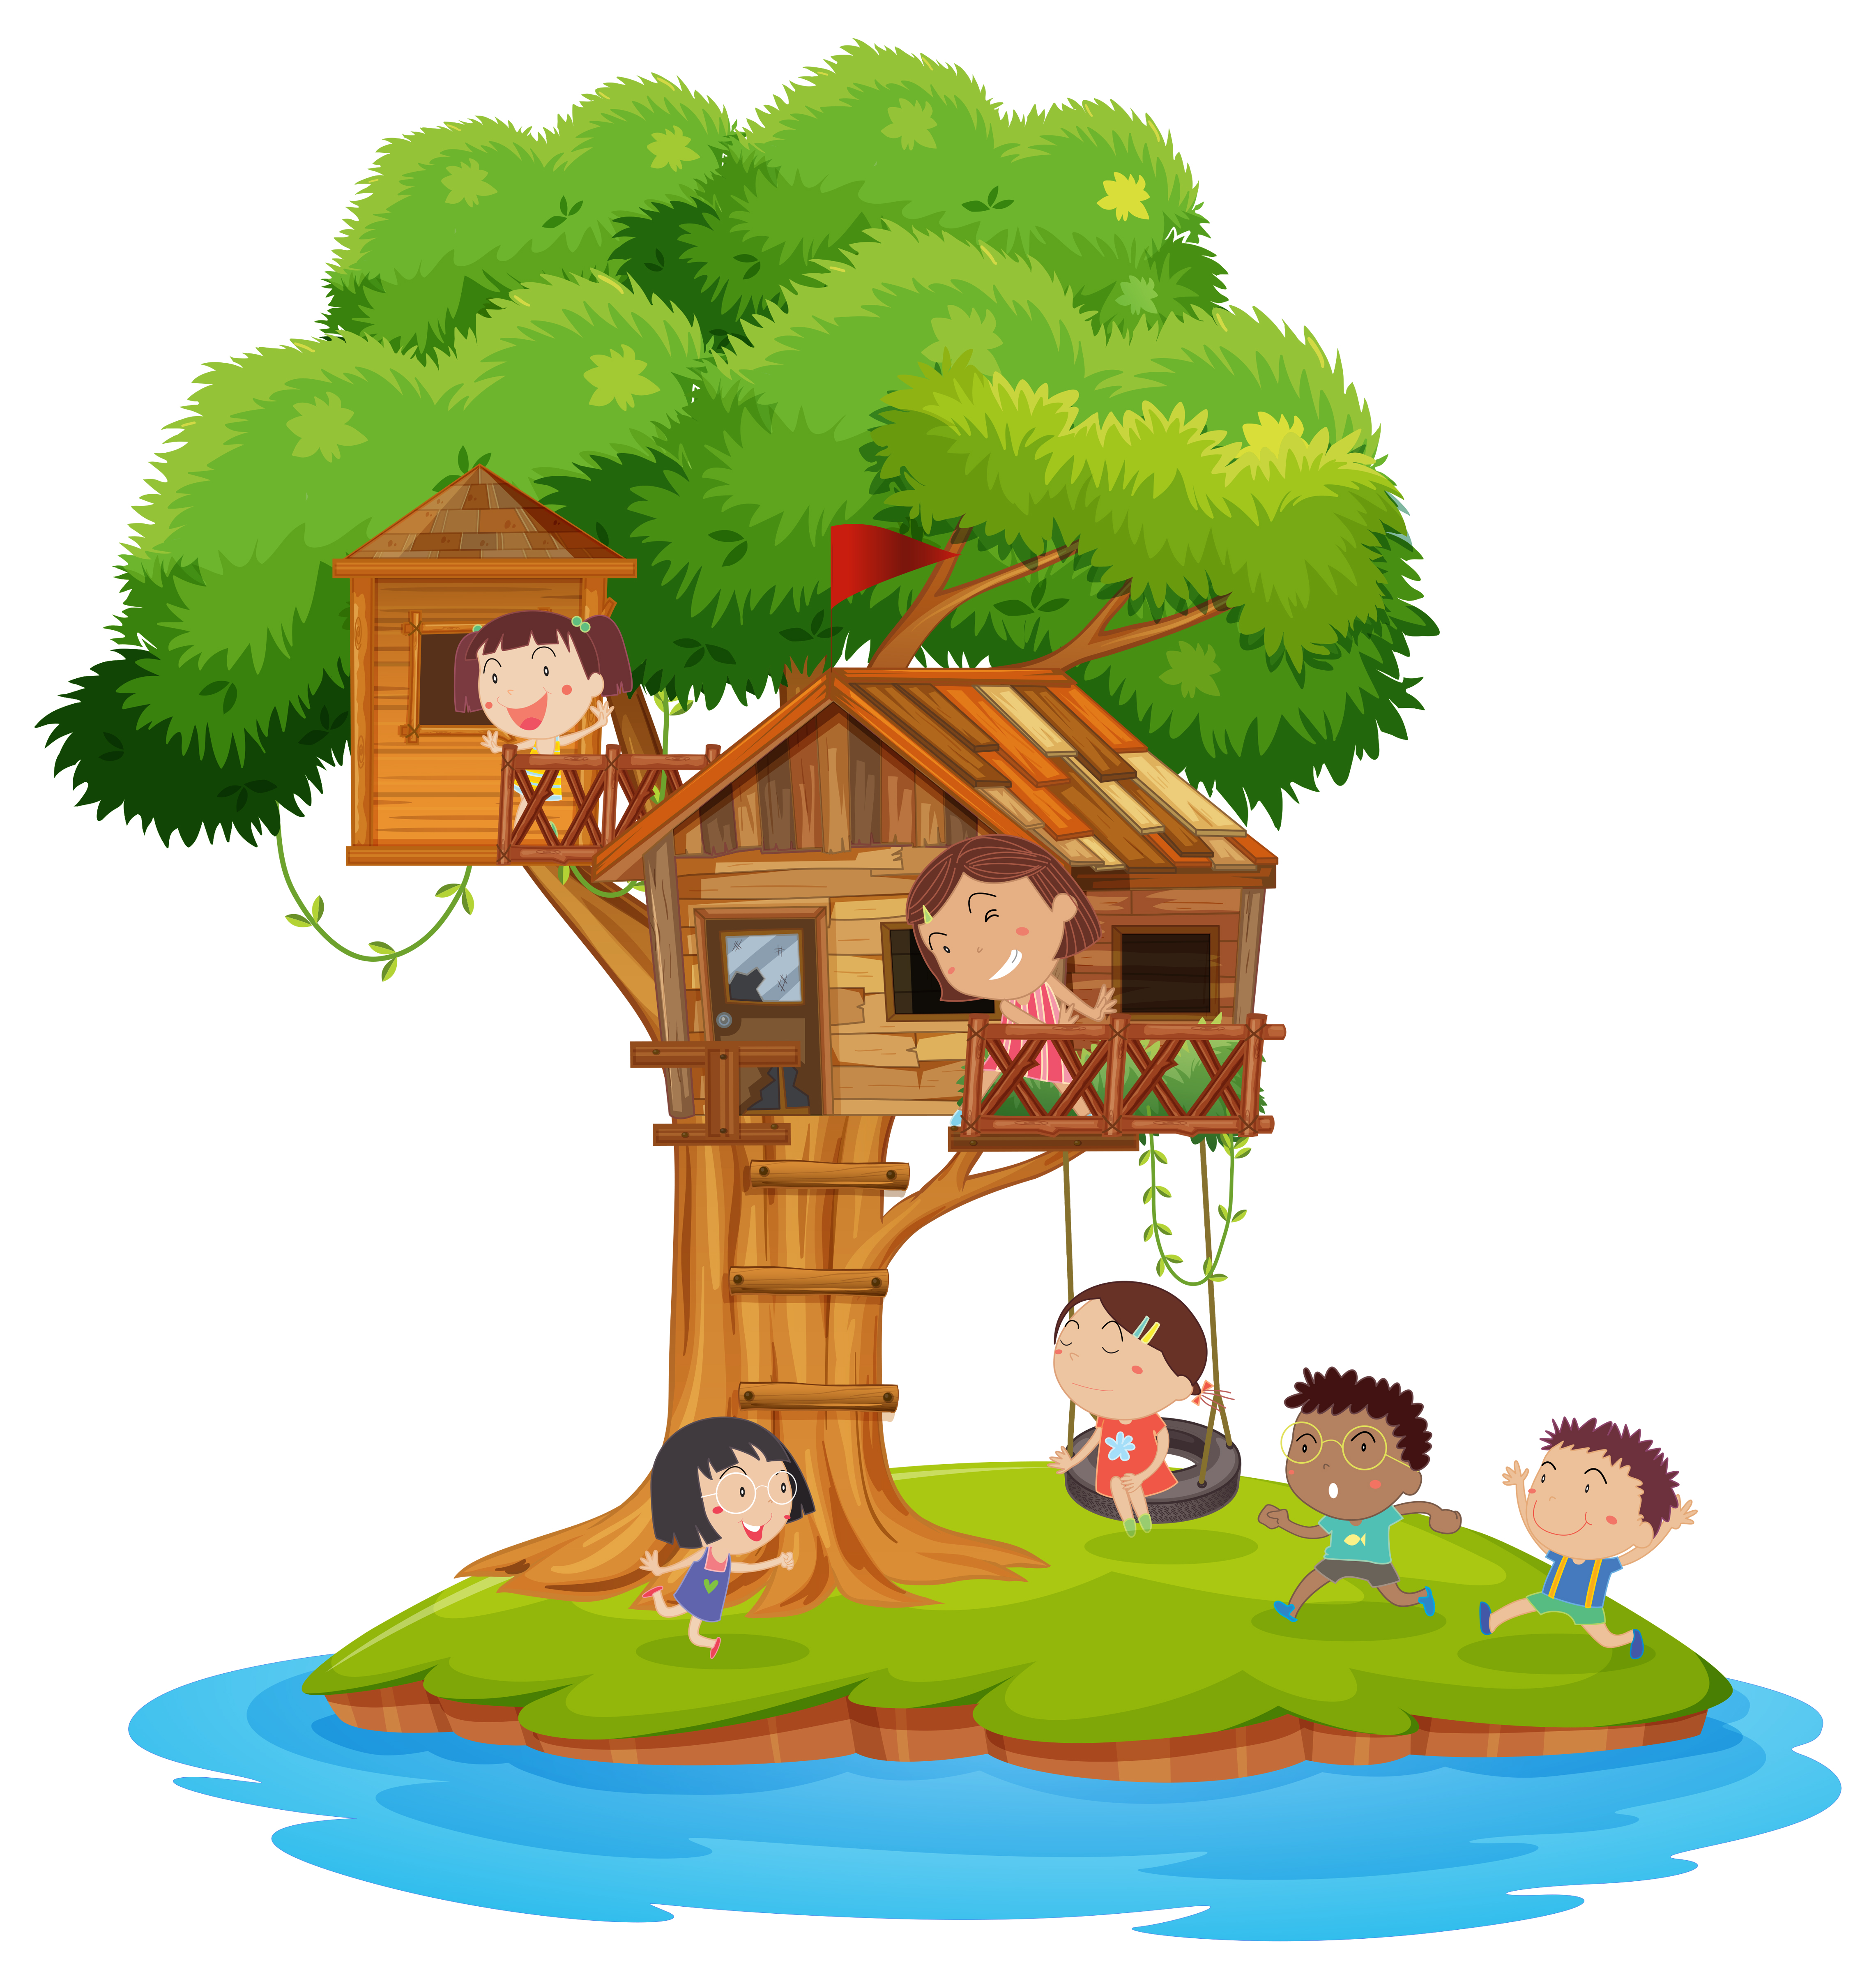 Picture of: Children Playing In The Treehouse Download Free Vectors Clipart Graphics Vector Art